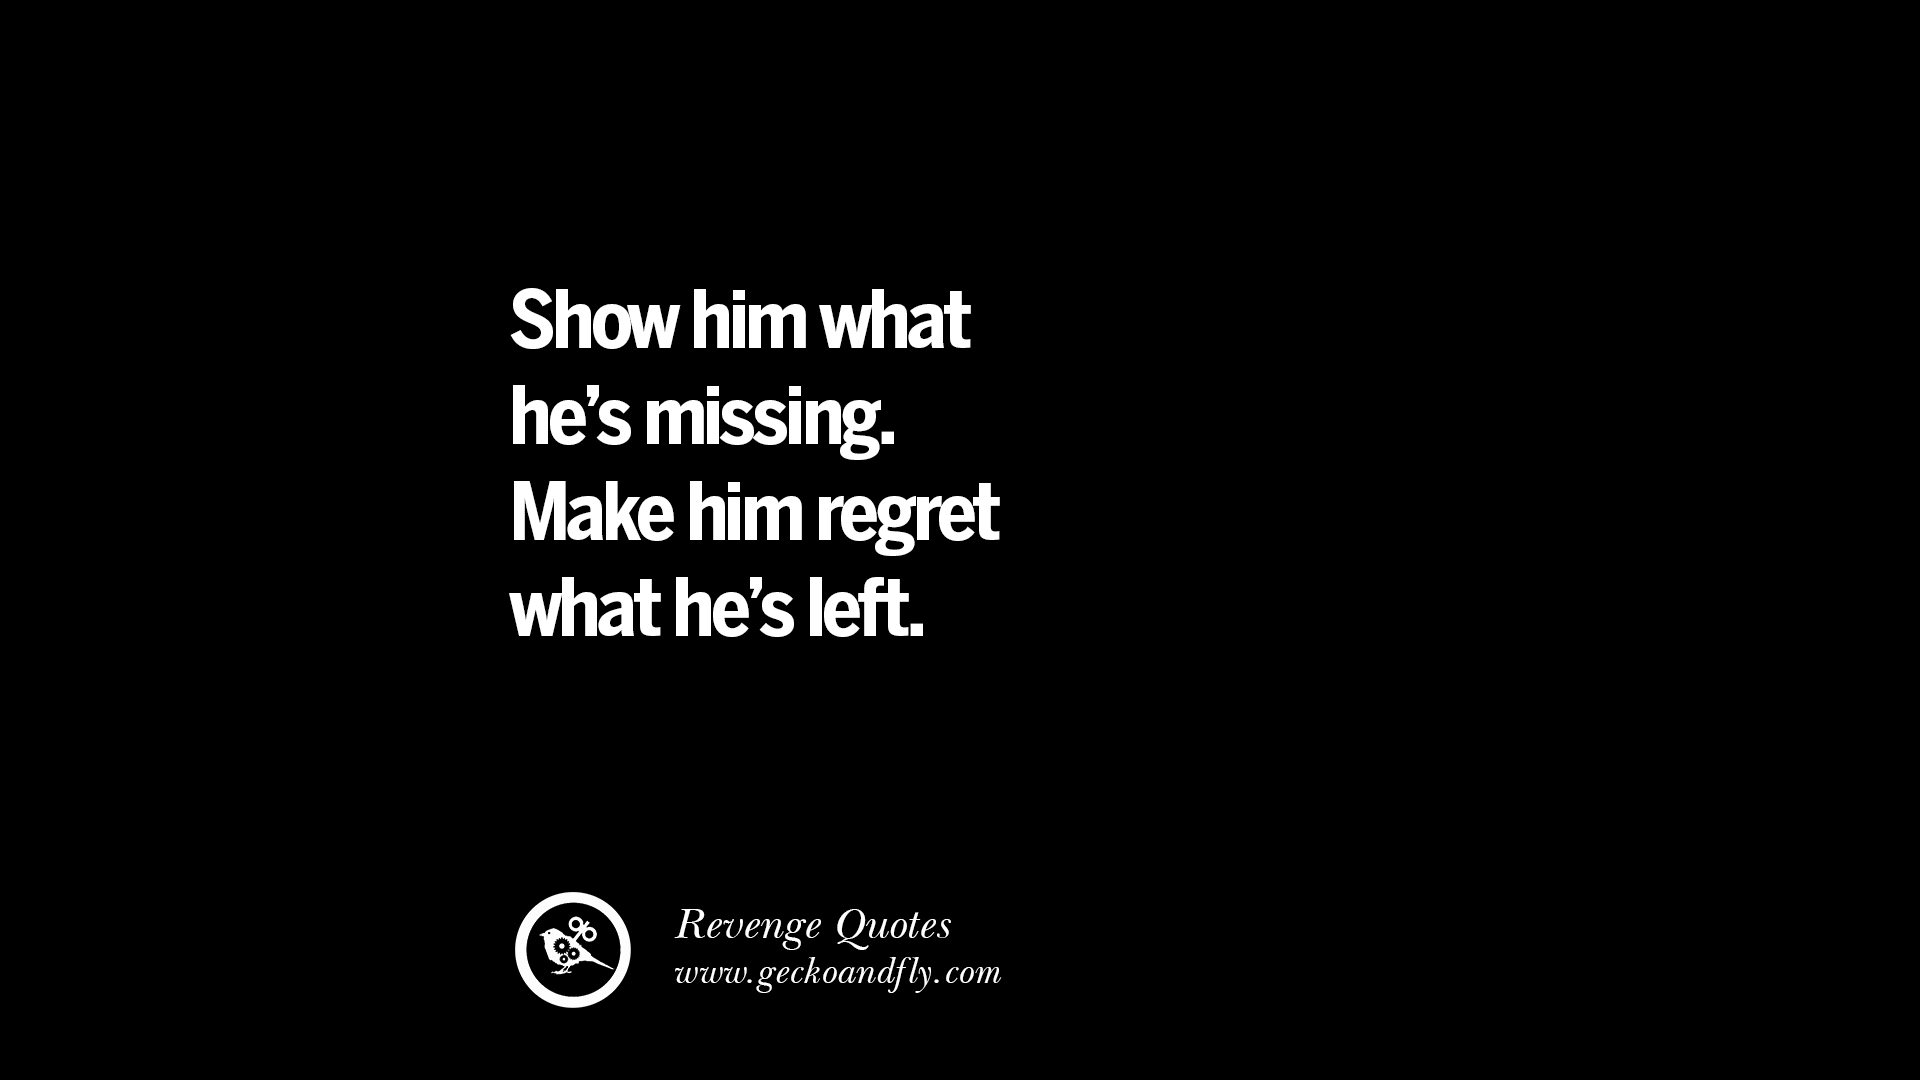 Indirect Love Quotes Wallpaper 20 Best Quotes About Breakup Revenge After A Bad Relationship